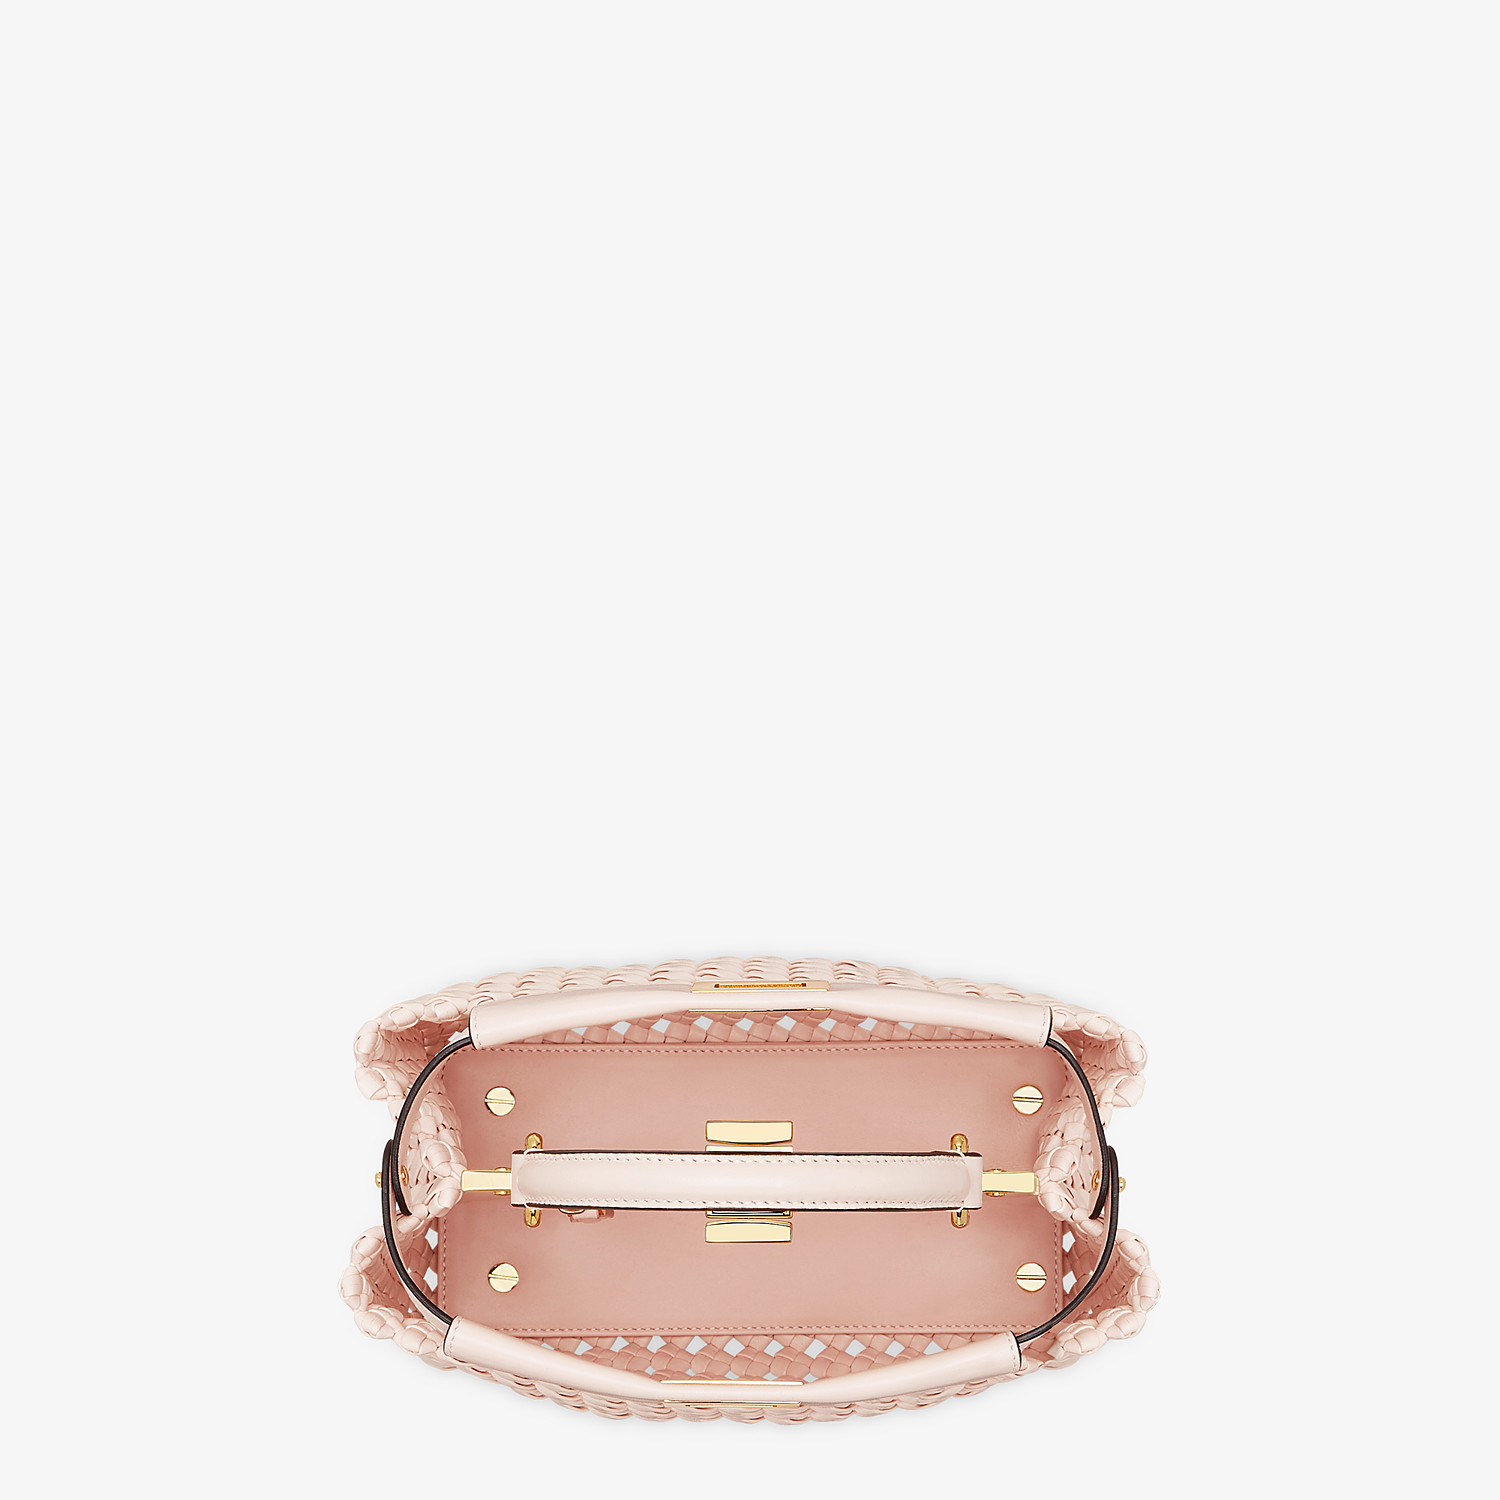 FENDI PEEKABOO ICONIC MINI - Pink leather interlace bag - view 5 detail